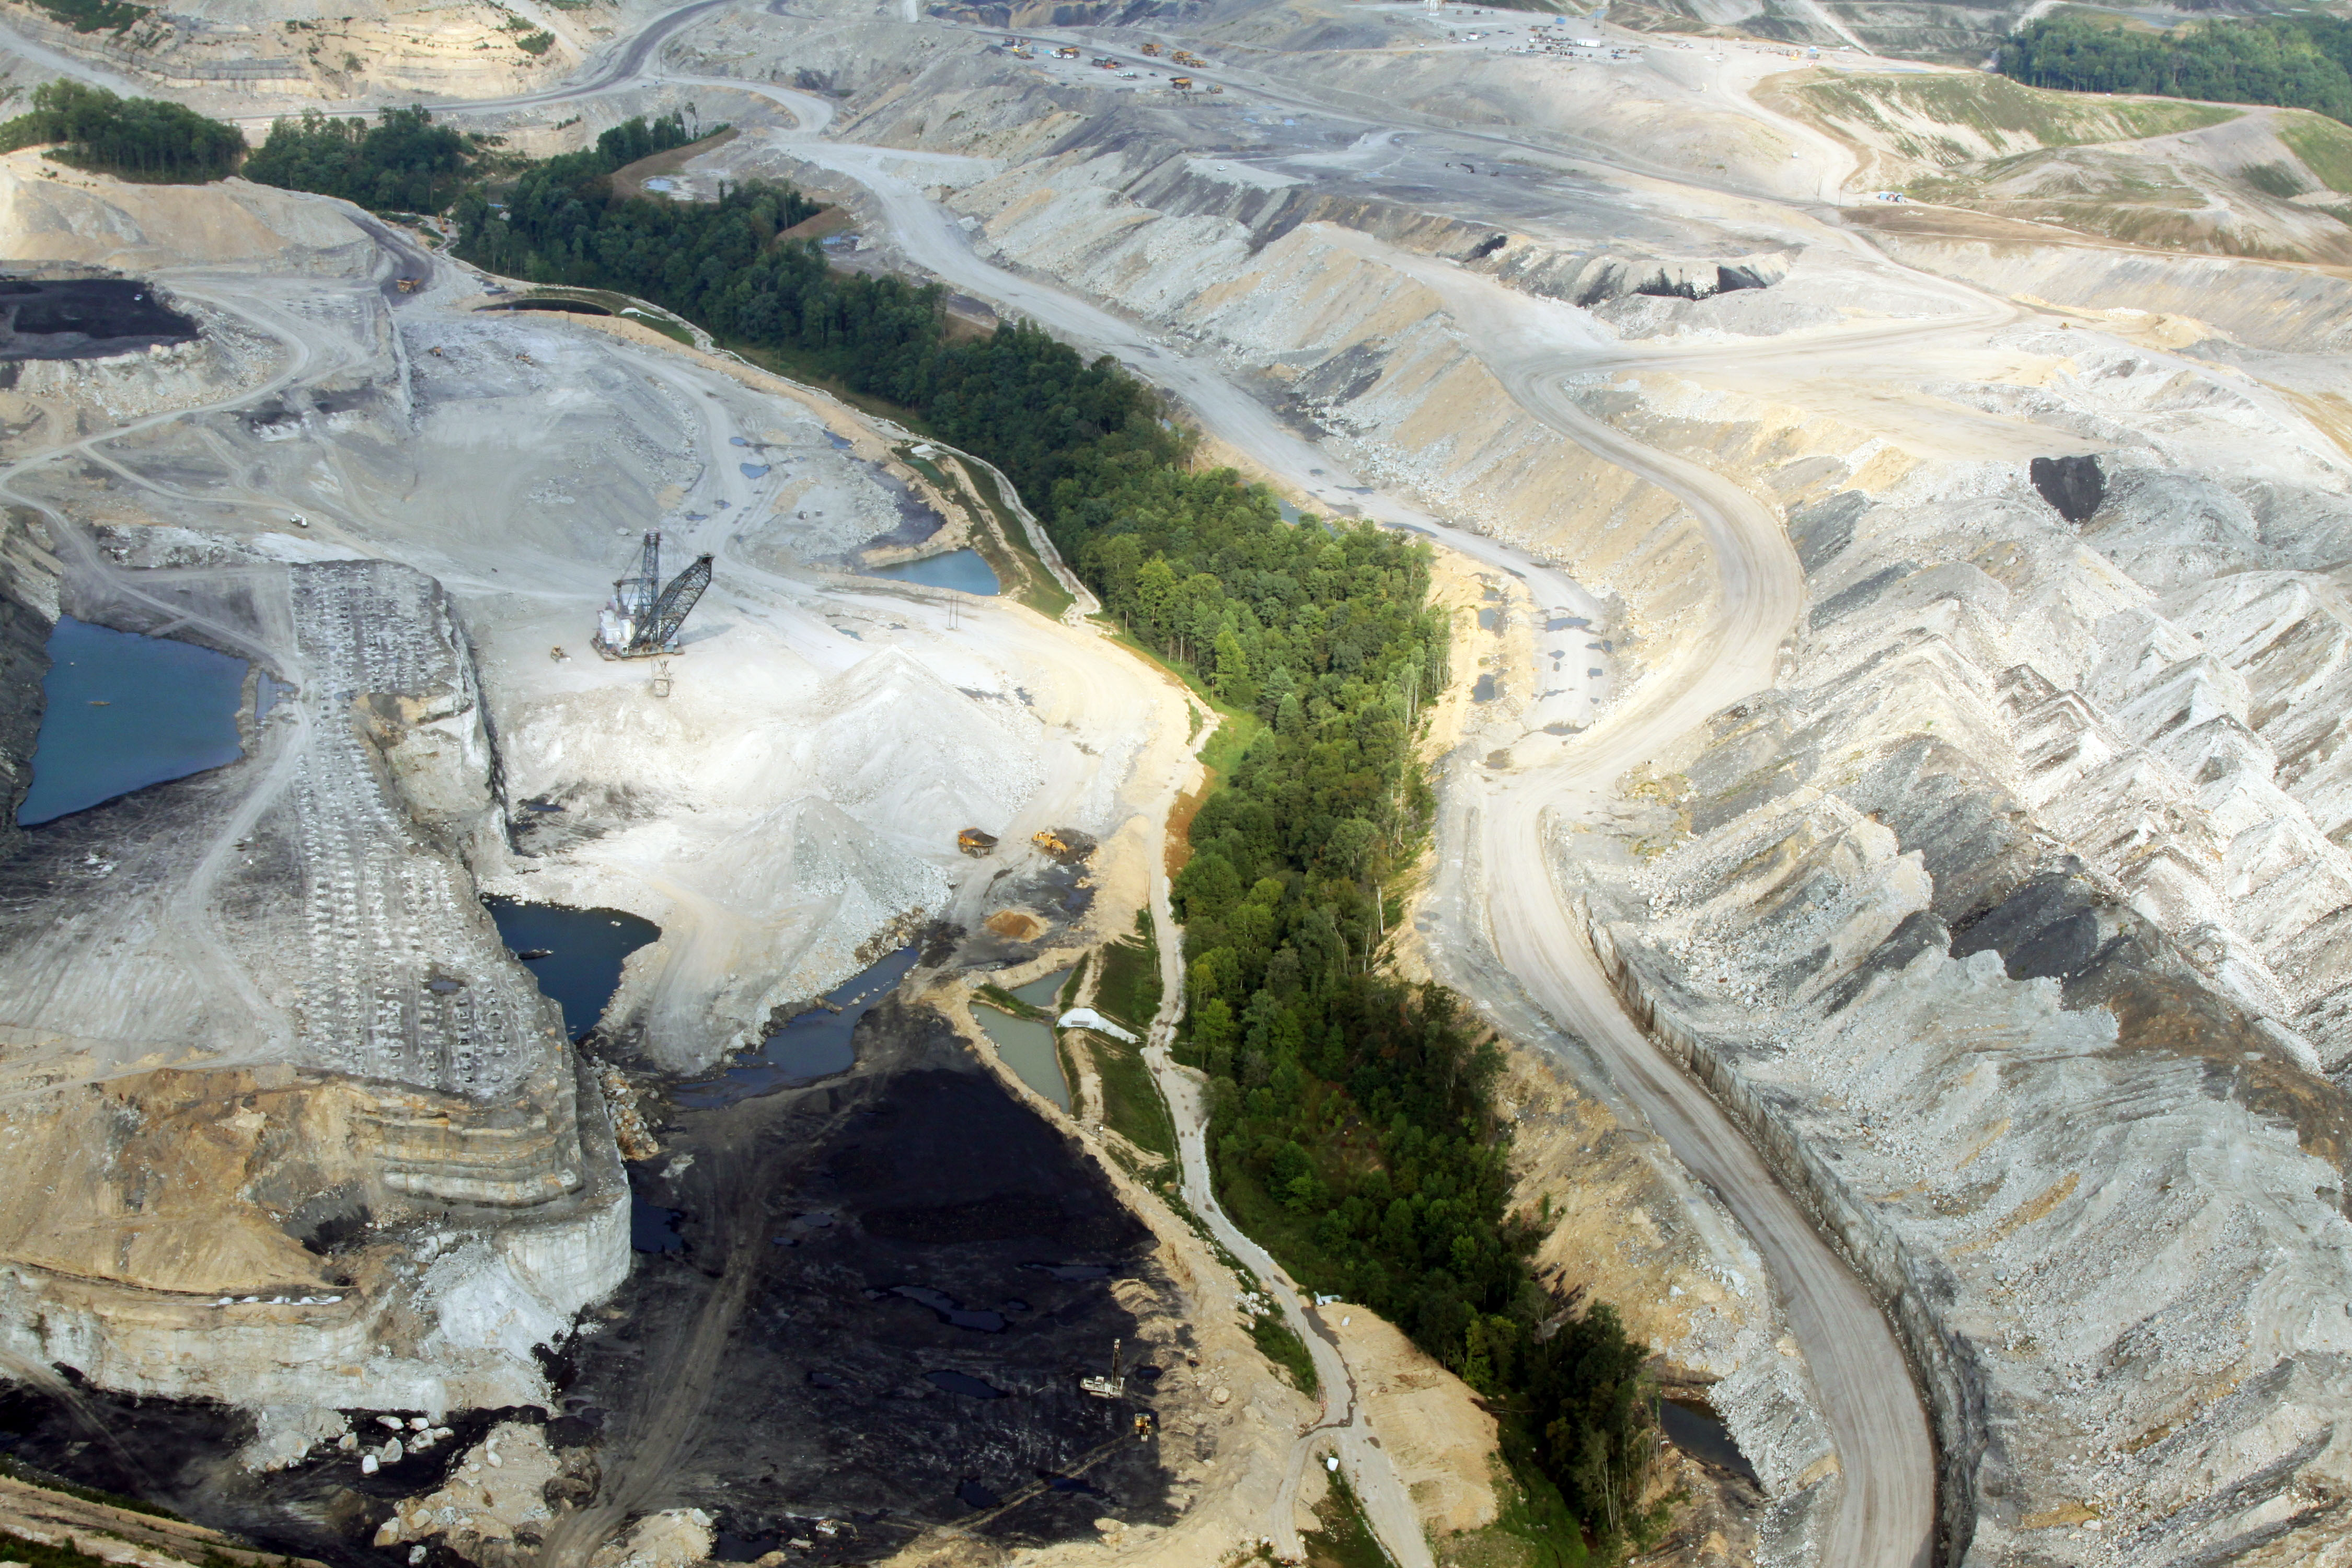 mountaintop removal essay Lost on the road to oblivion: the vanishing beauty of coal country a conversation between carl galie and joseph bathanti essay and video b.